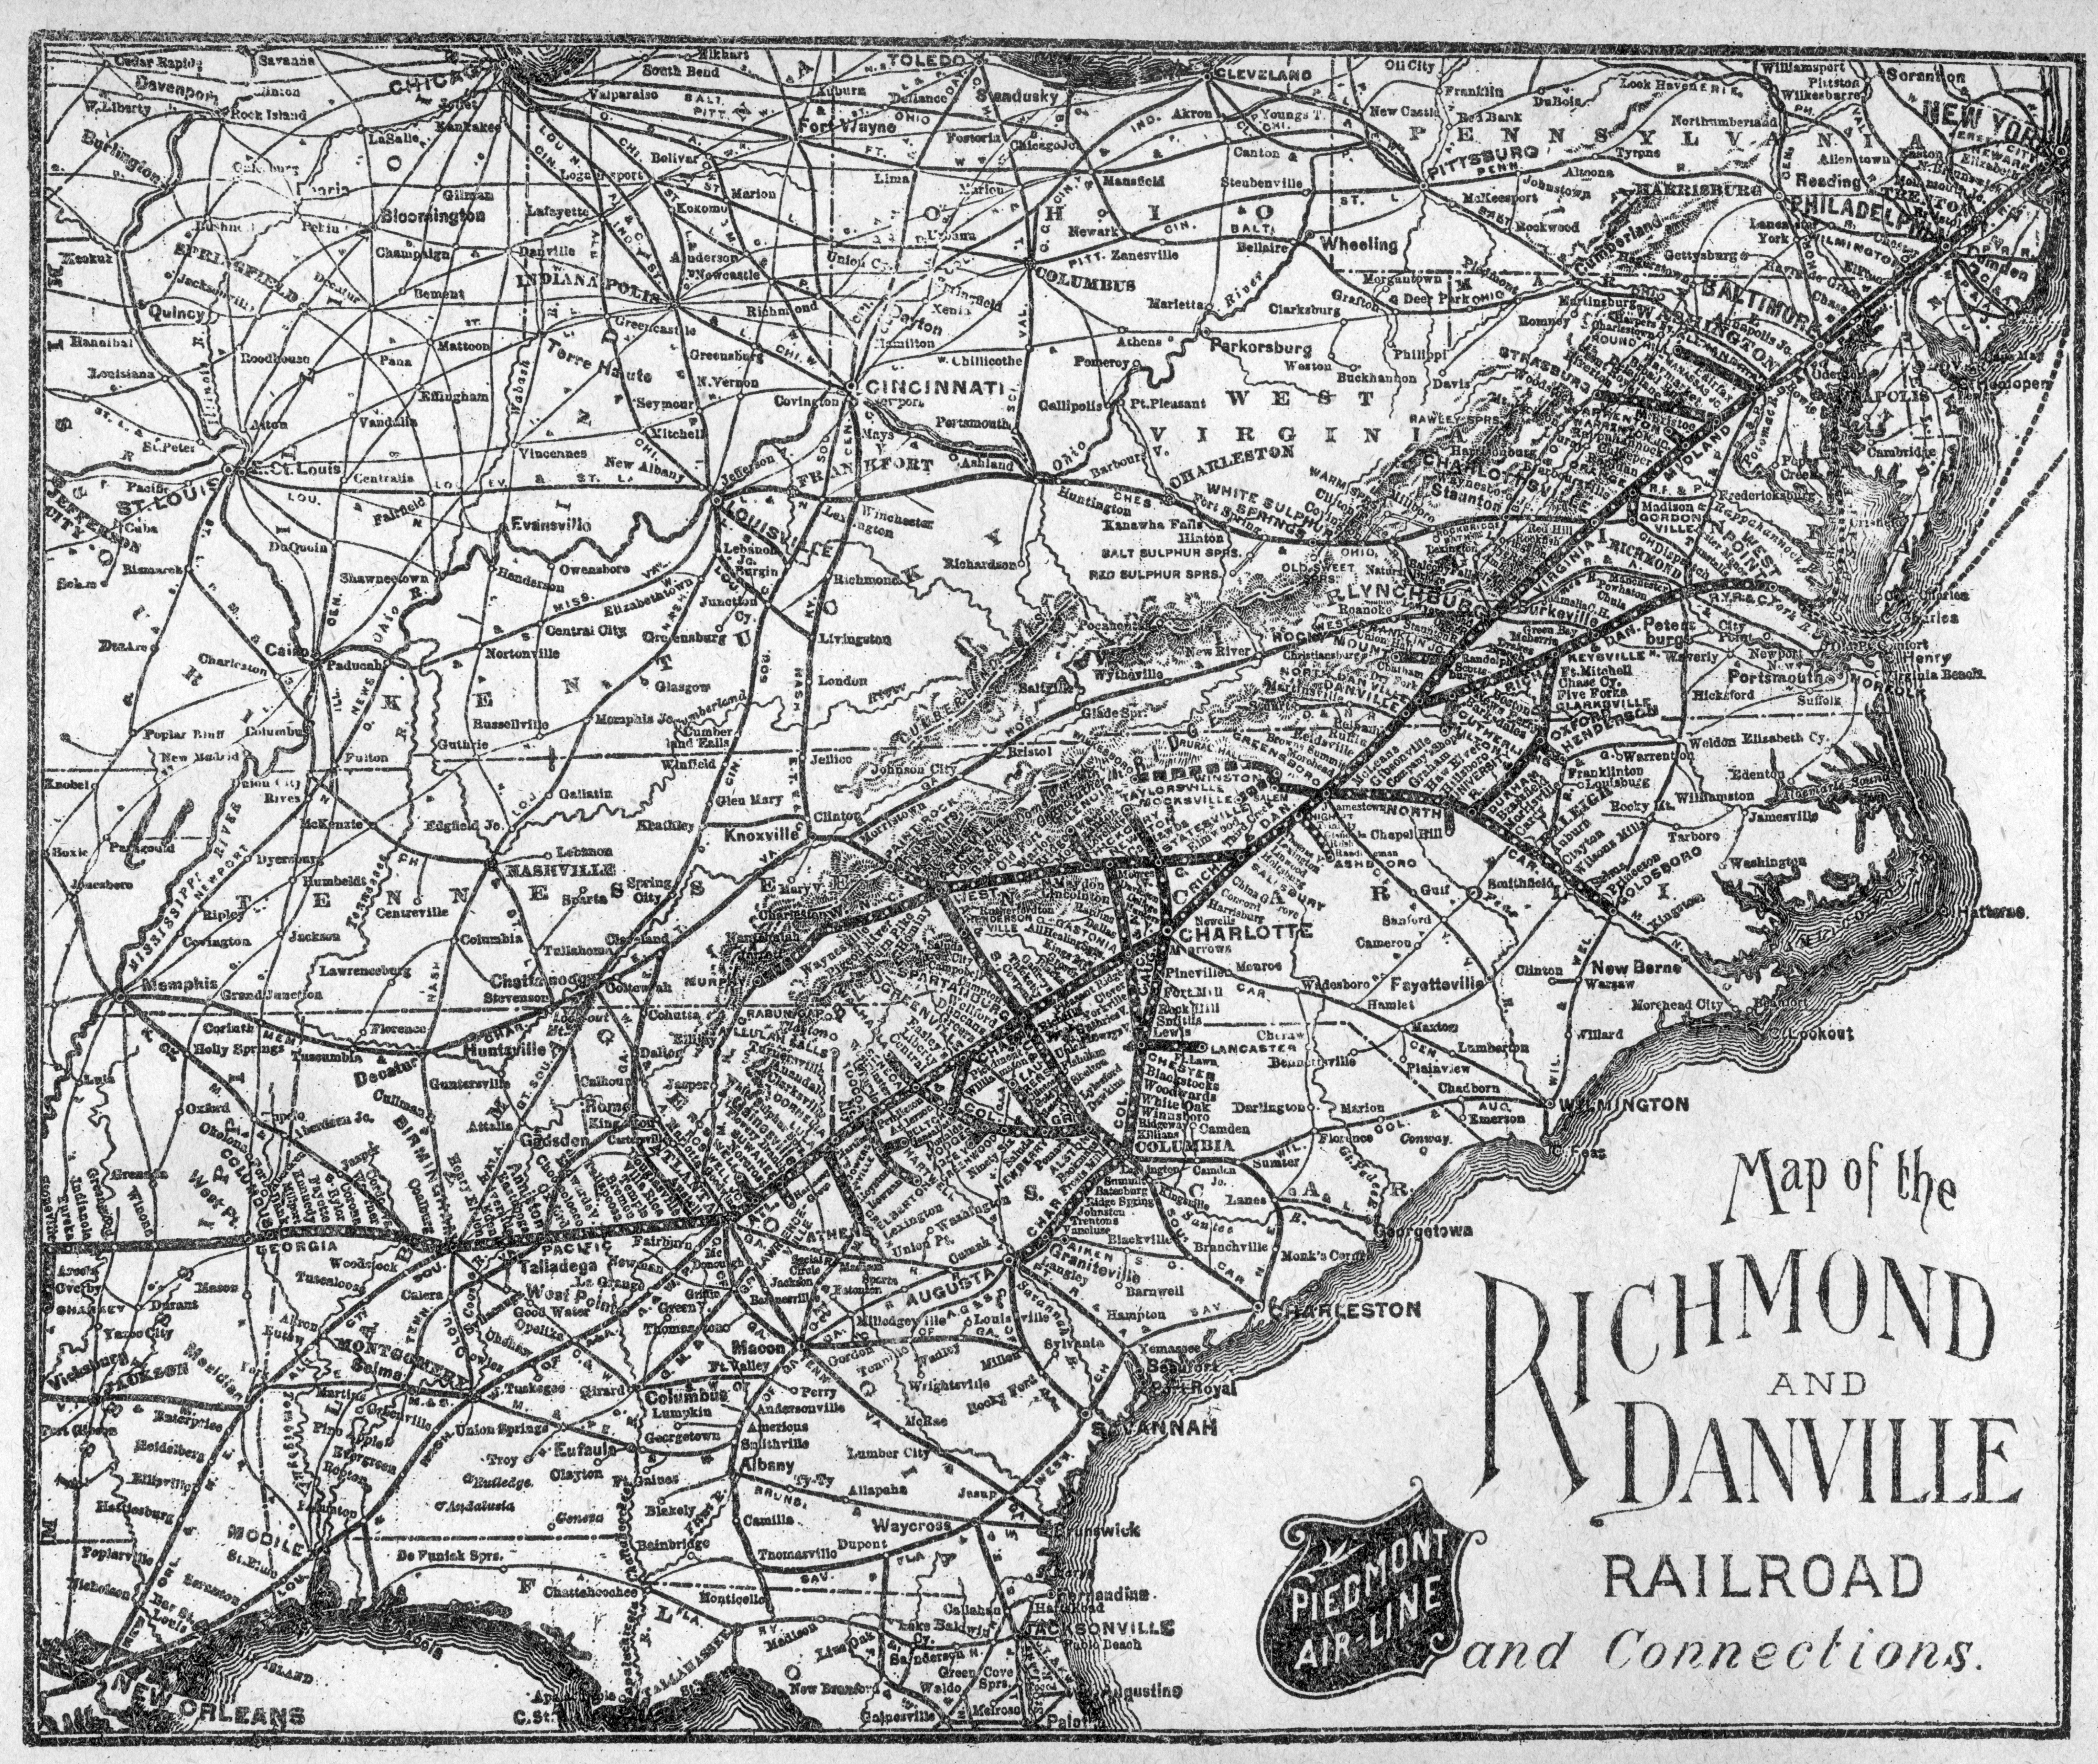 the acquisition of consolidated rail corporation b norfolk The norfolk southern railway is a class i railroad operating over 22000 route  miles in 22  ns acquired 58% of conrail assets, while csx got the remaining  42%, including about 7,200  arnold b mckinnon, ceo and president: 1987– 1992.